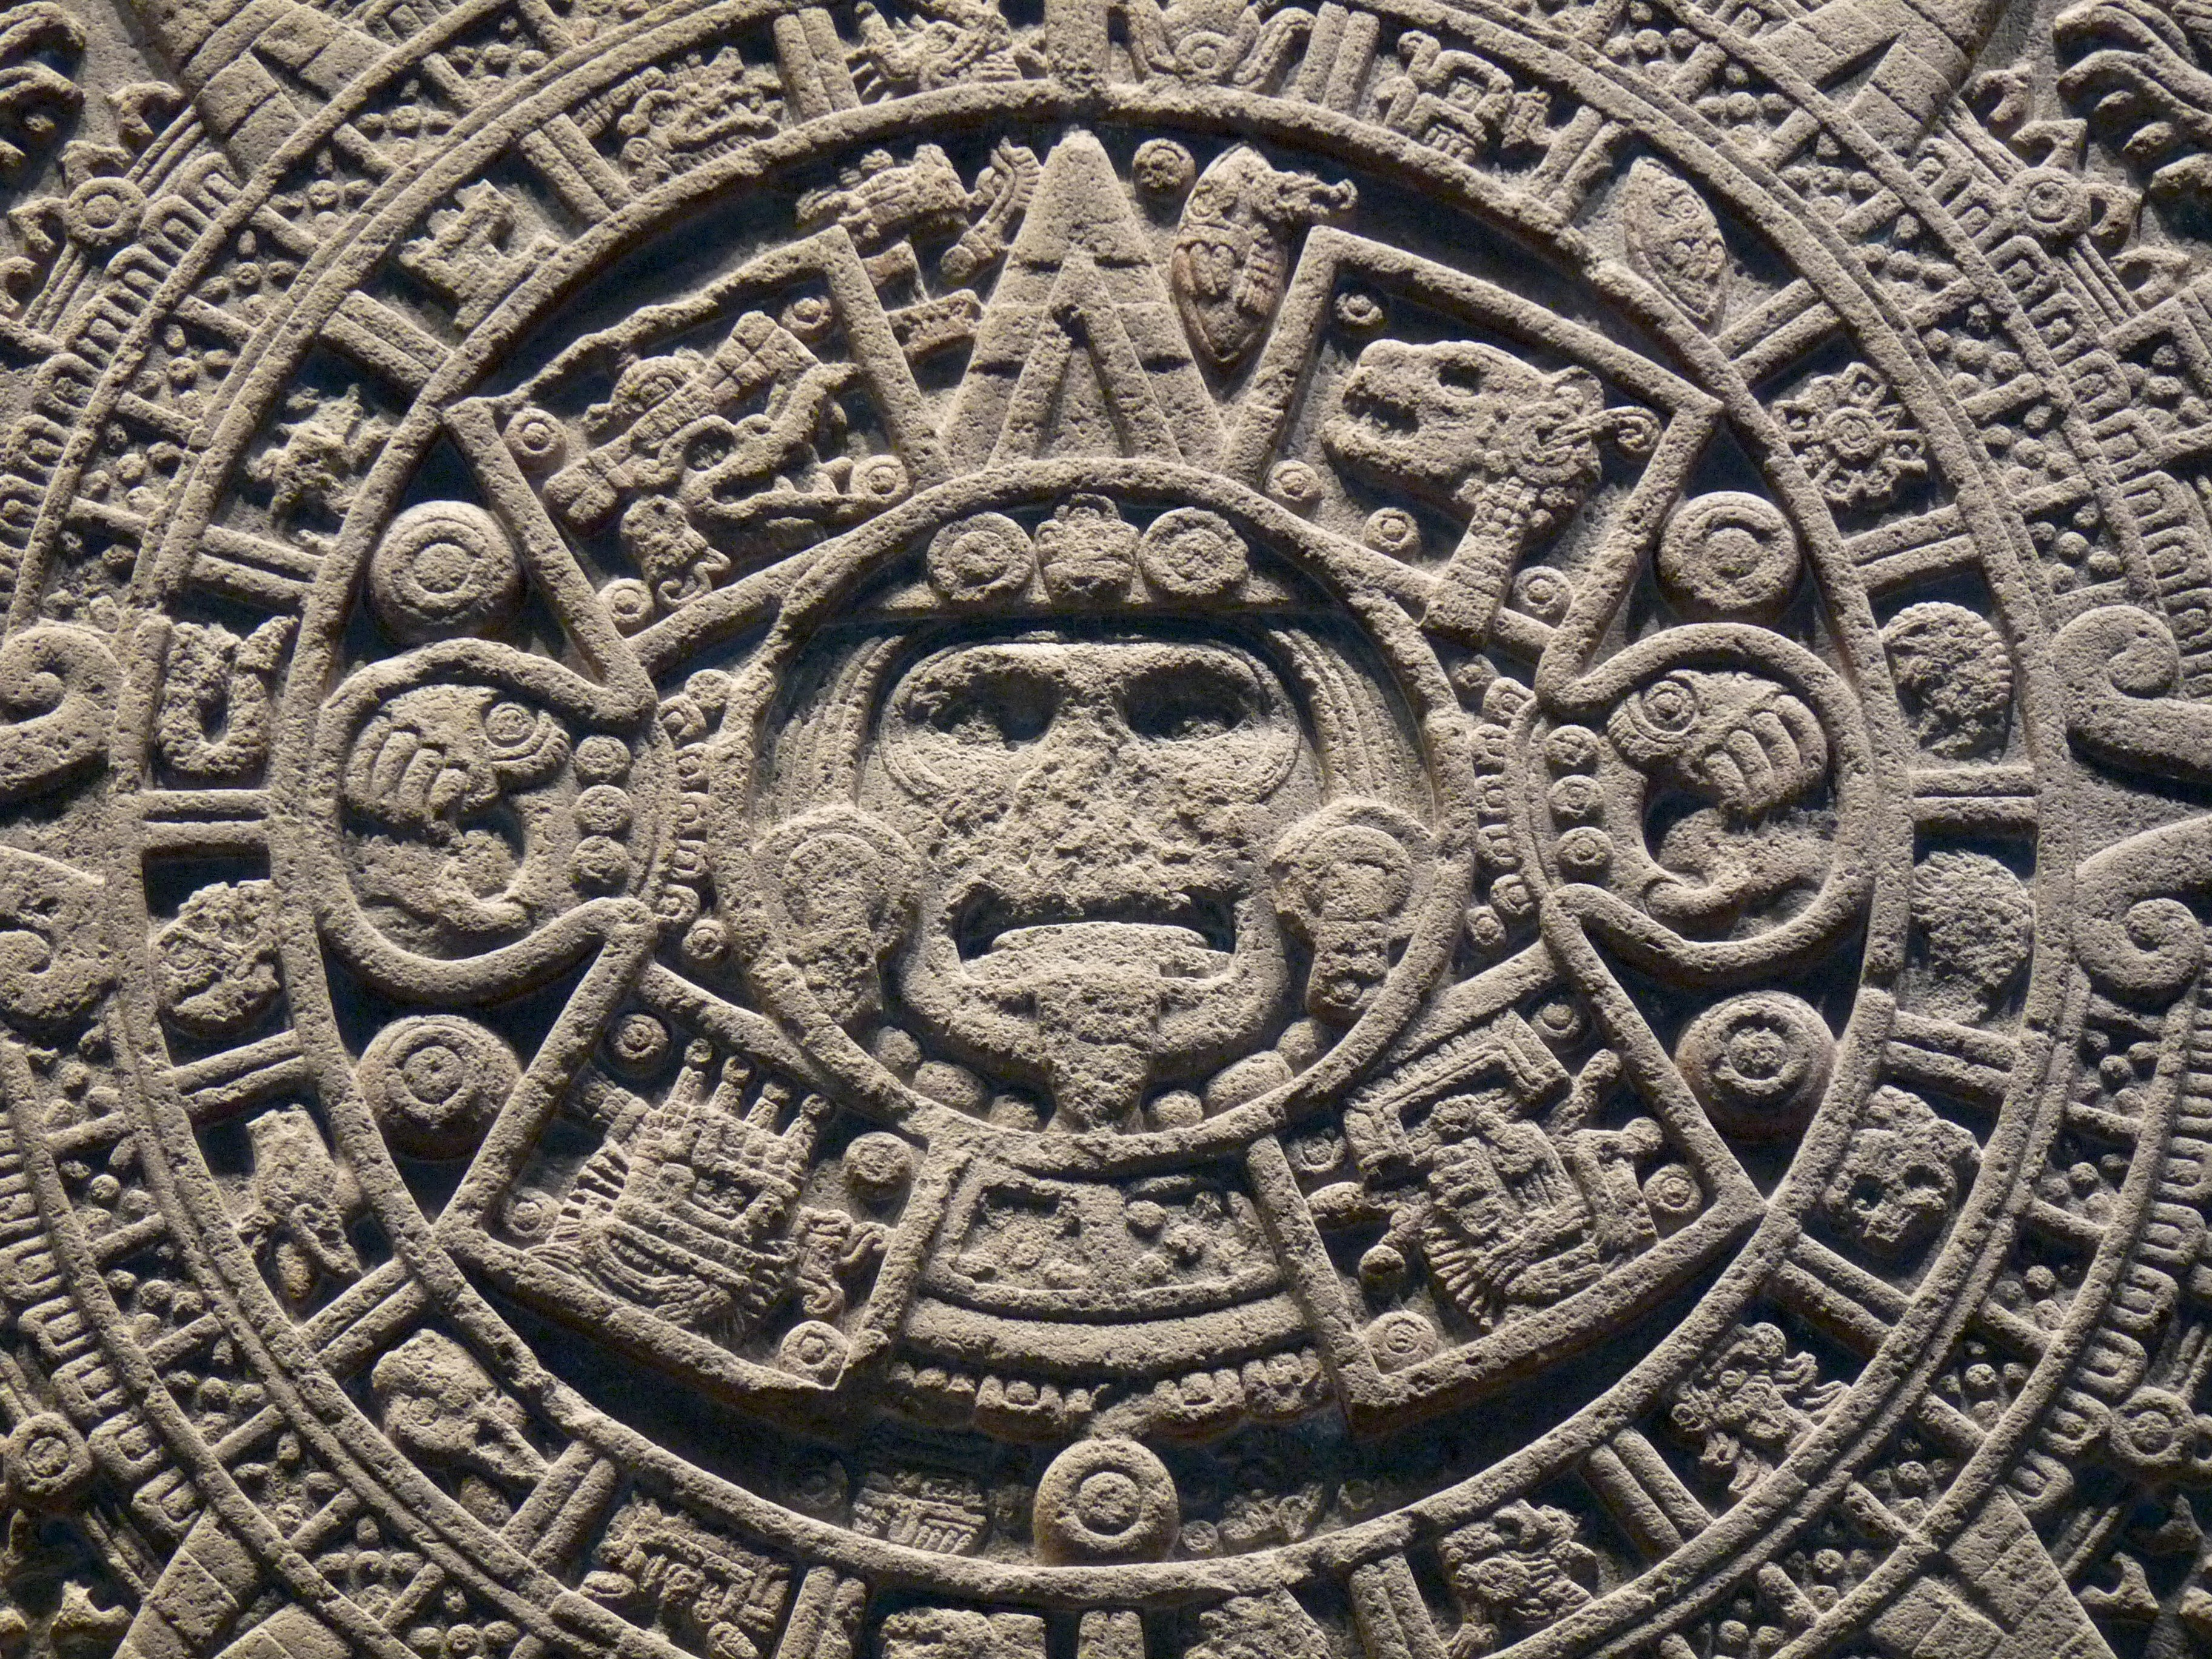 The Aztec sun stone, a massive sculpture made in the early 16th century, depicts how the world previously ended. Source: El Comandante